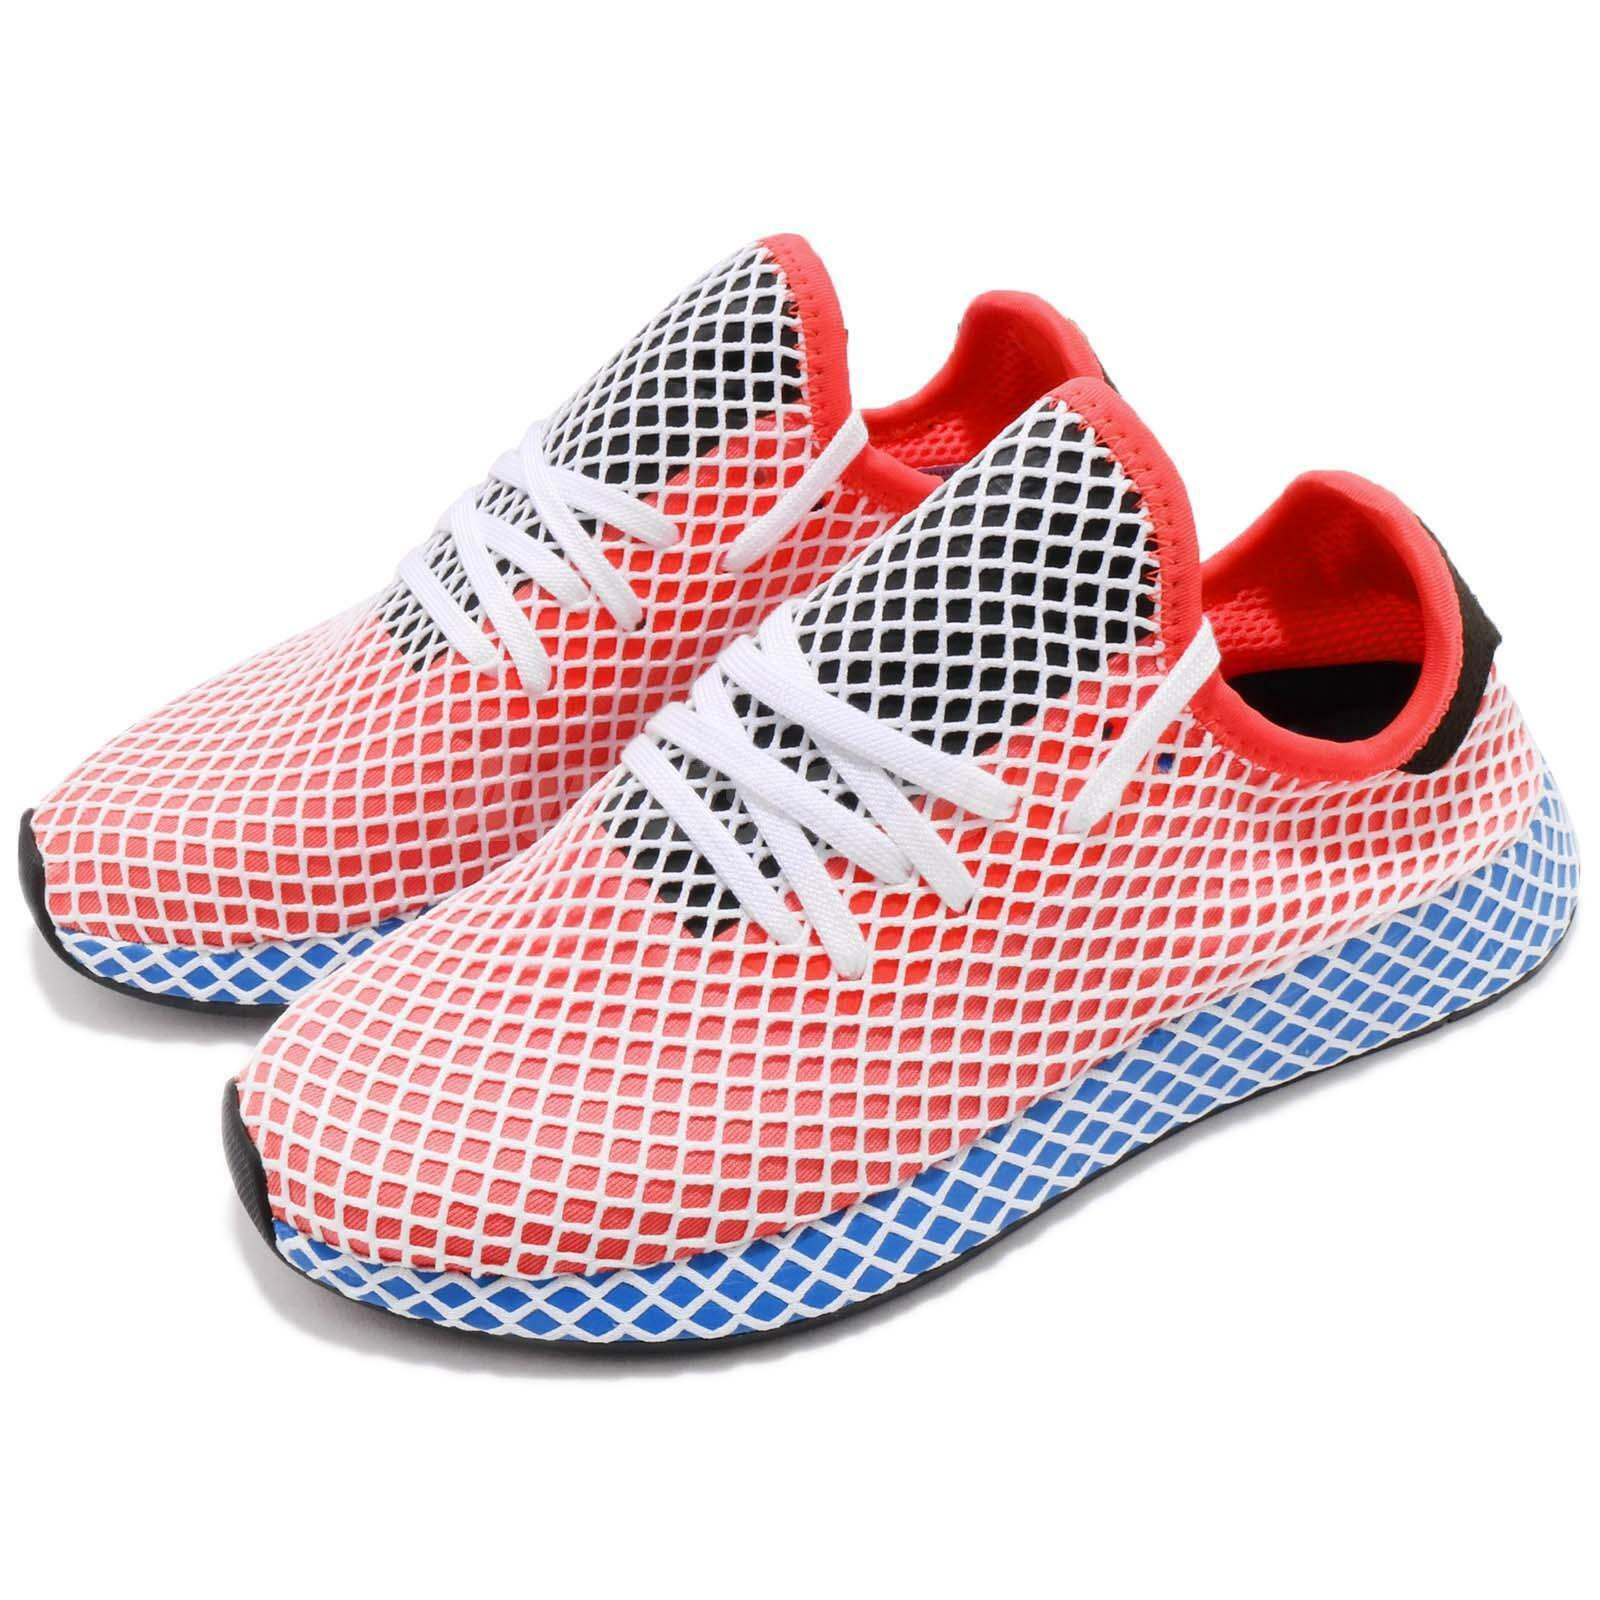 Adidas Originals Deerupt  Runner Solar Red blueeeeeeeeebird Adryan Hanson Men shoes CQ2624  more order